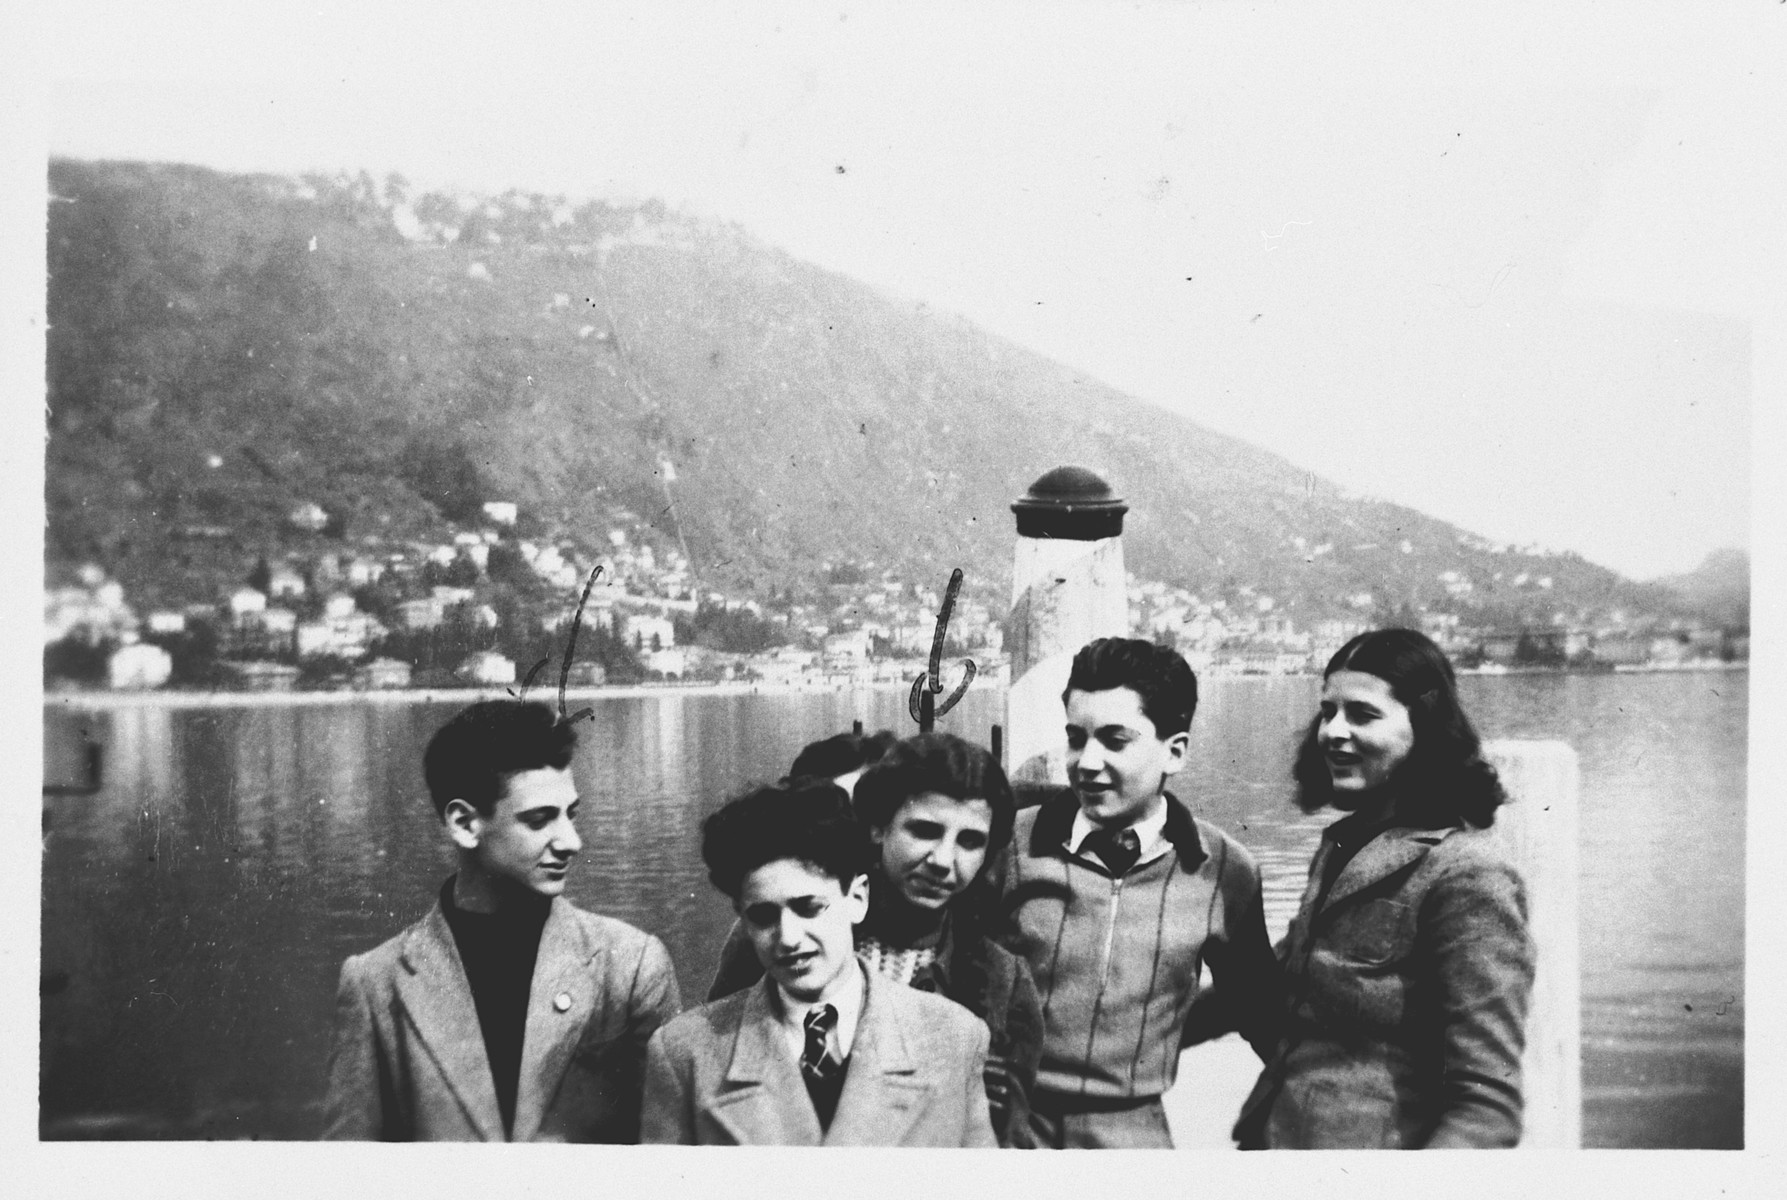 Jewish students go for a boat ride in the lake district in northern Italy.  Those pictured include Serenella Foa and Riccarda Ruberls.